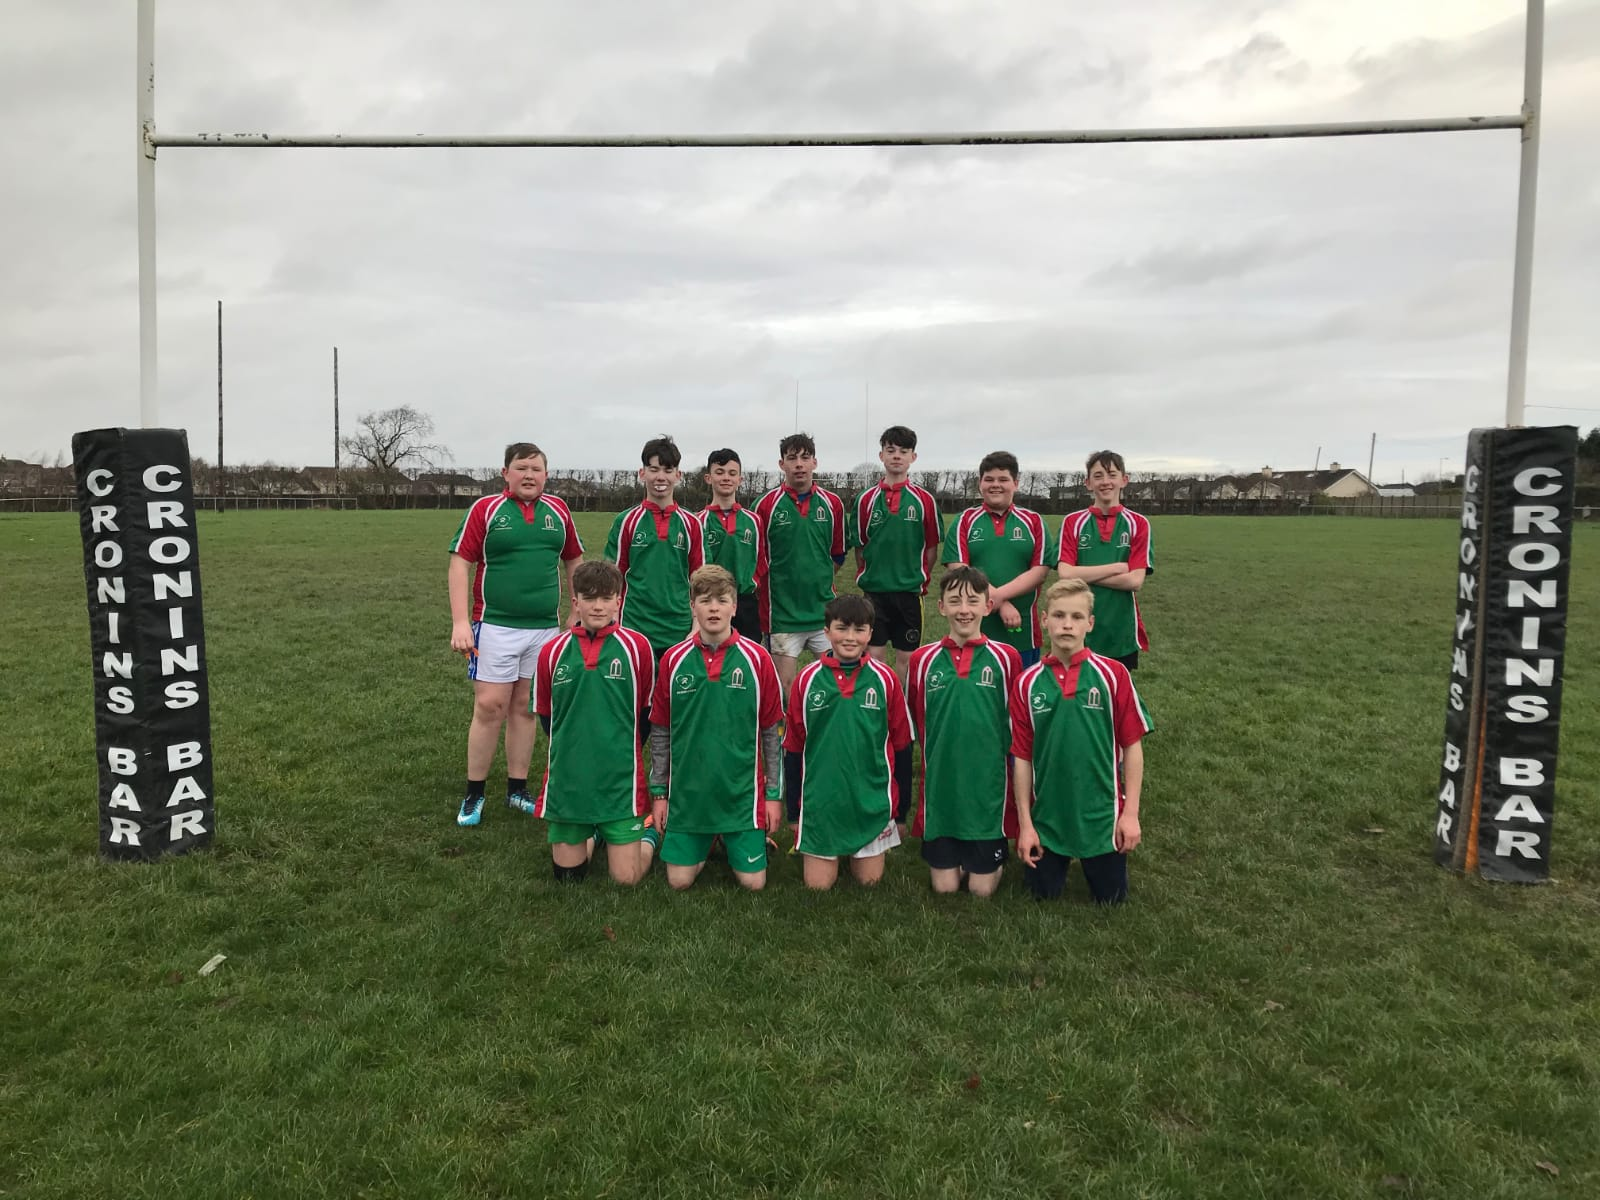 Dec 2018: Desmond College's First and Second year boys team